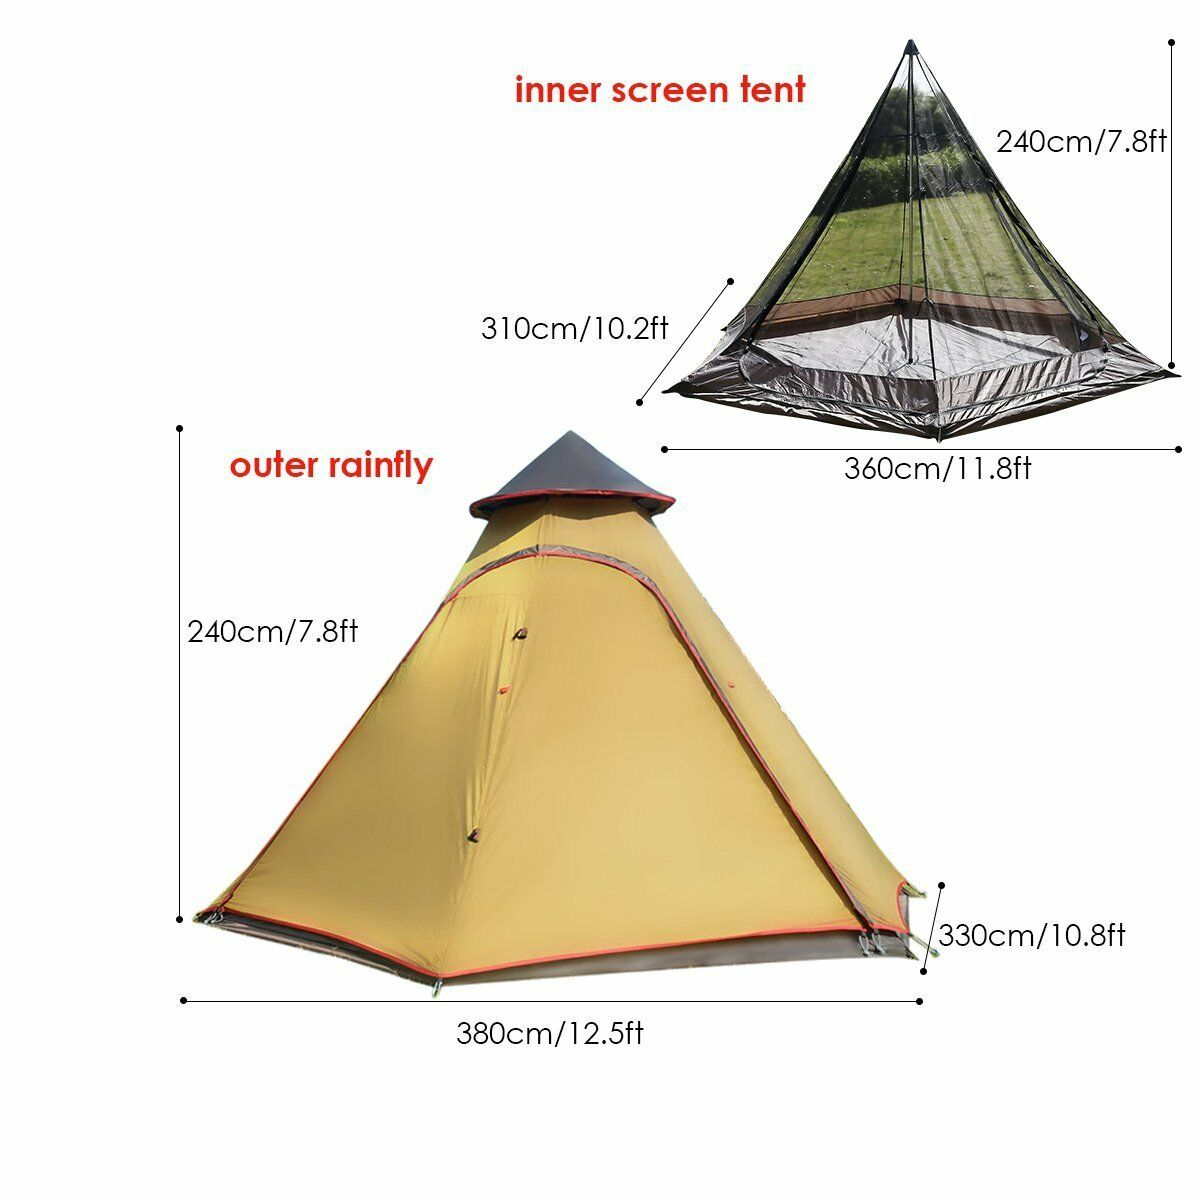 Double Door Waterproof Mesh Teepee Camping Tipi Family Tent Double Skin 4person